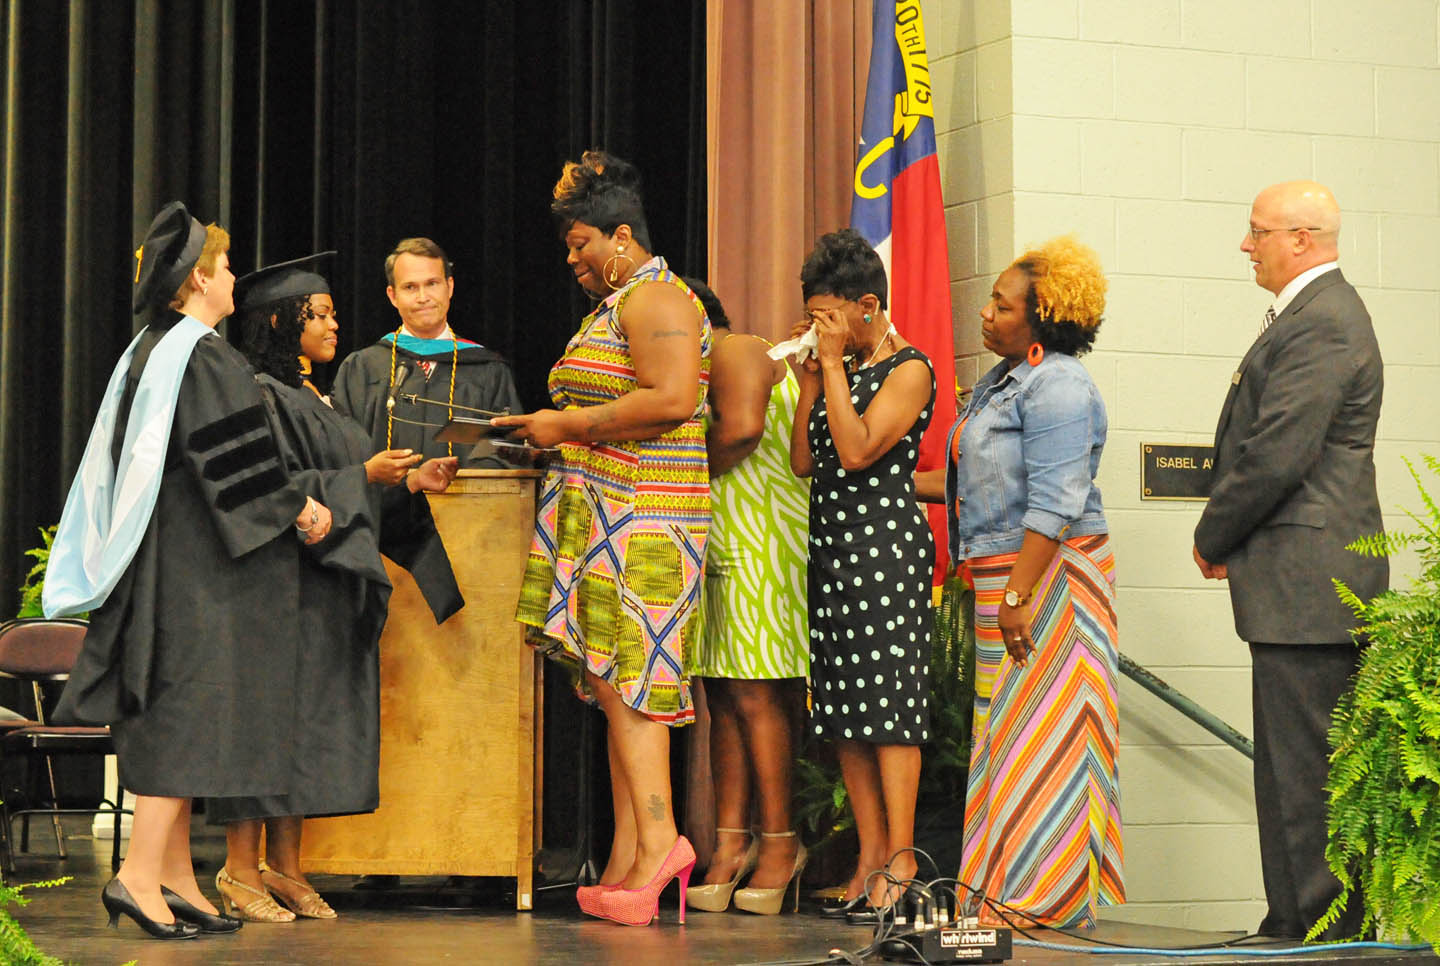 Click to enlarge,  Jasmine Wicker, deceased, of Lee County, should have been at Central Carolina Community College's spring commencement, but died during the winter. Her Associate in Applied Science in Human Services was awarded posthumously to her family at the college's May 22 commencement. Presenting the degree to the family are (from left) CCCC Executive Vice President for Instruction Dr. Lisa Chapmen, Sociology instructor Vadrin Colvin-King and Vice President of Student Services Ken Hoyle. Receiving the degree are (from center, left) Jasmine's mother Shonda Moncrease, aunt Schricka Watson-Johnson, grandmother Marcelene McLean, and aunt Tonia Watson, accompanied by CCCC Director of Student Activities Mike Neal.The college awarded 315 associate degrees, and 421 diplomas and certificates, with some students receiving multiple credentials. Pictures from the commencement exercises can be downloaded in a few days from www.cccc.edu. The commencement can also be viewed online at 4CNCLive.com. For information on what CCCC offers, visit www.cccc.edu/.